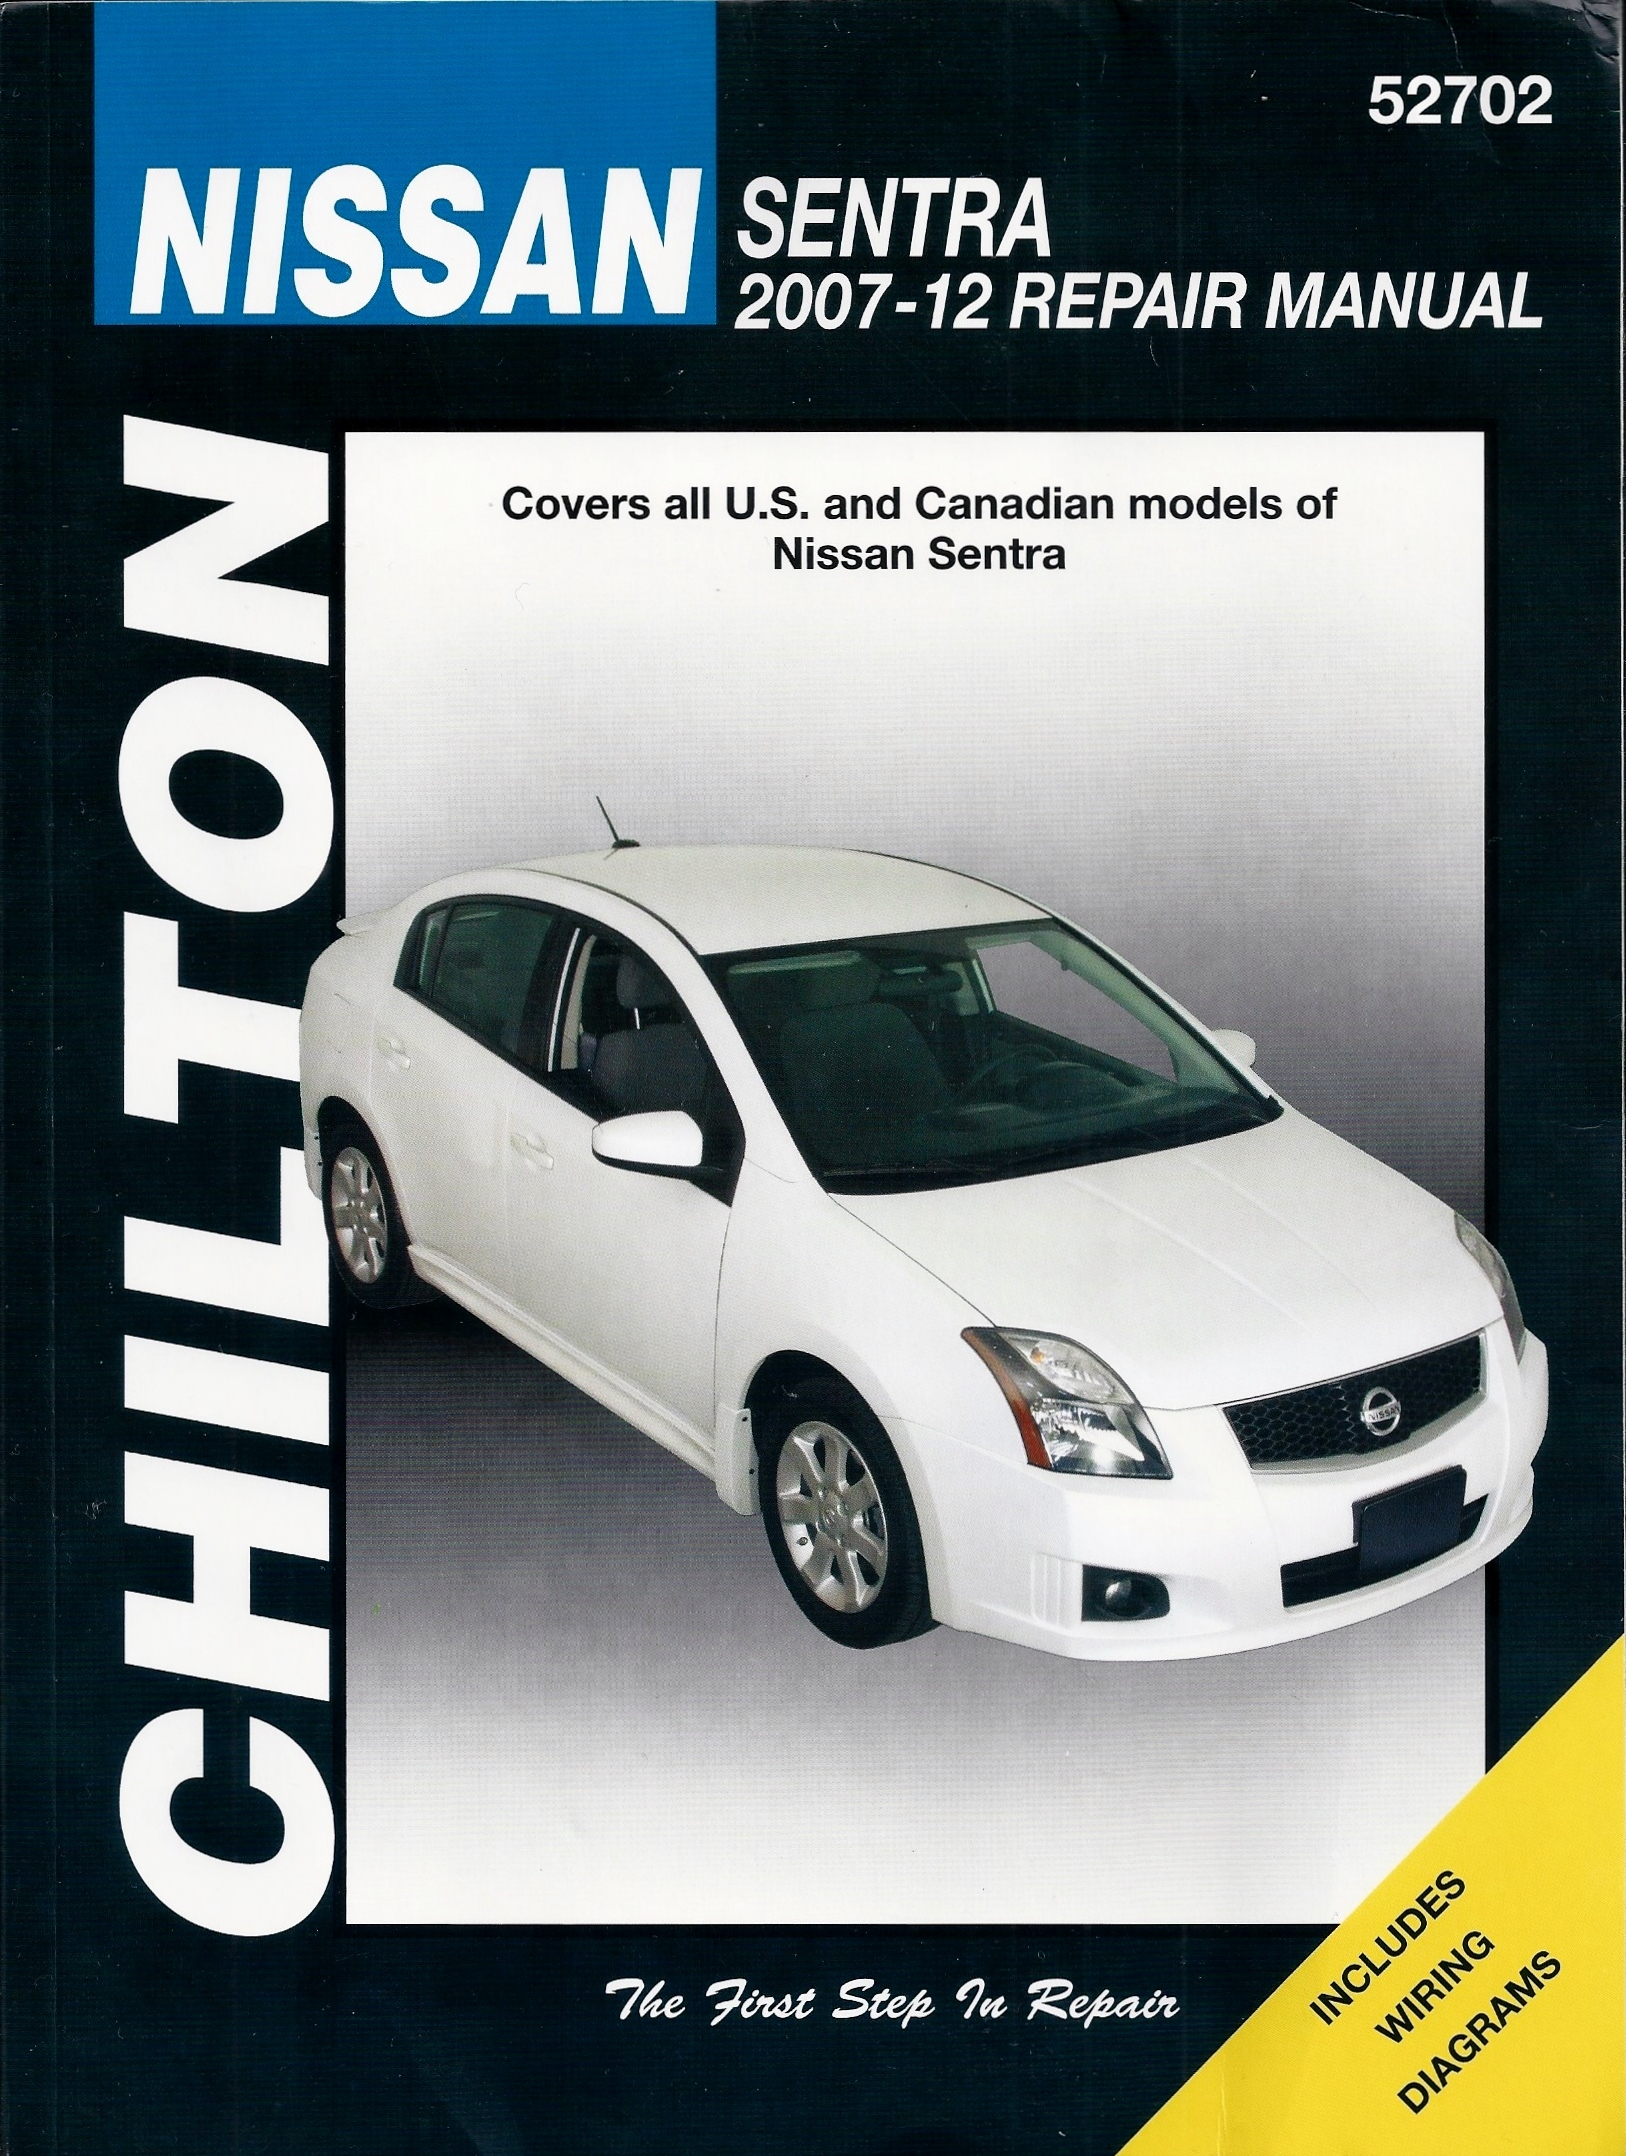 Chilton's 2007-12 Nissan Sentra Repair Manual